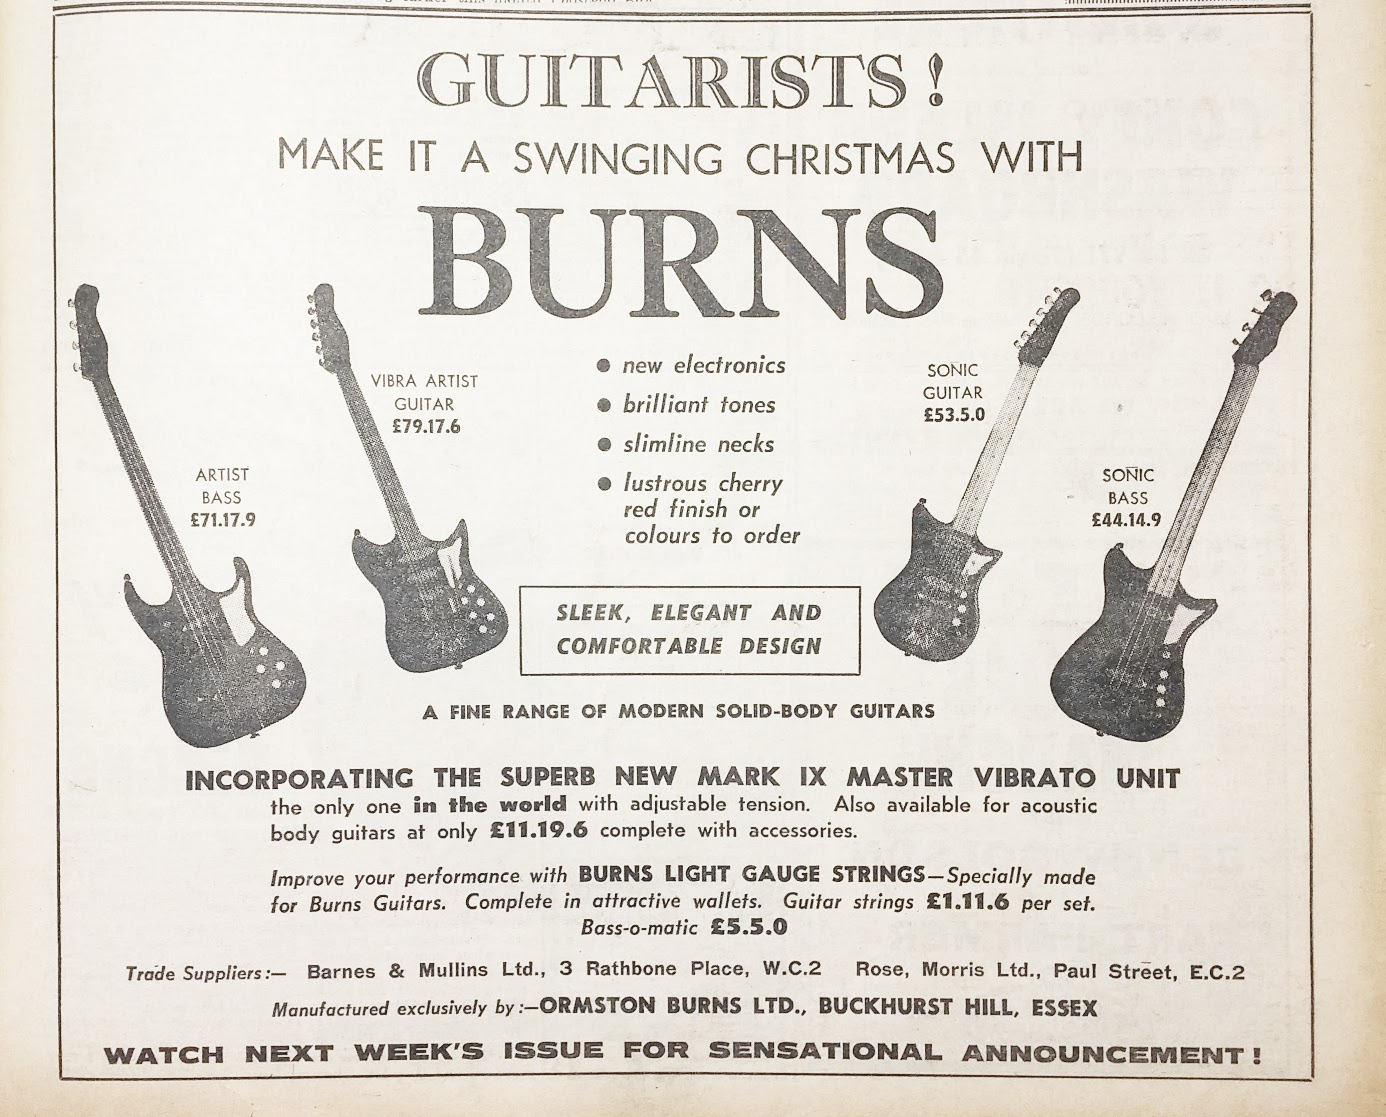 Burns Swinging Christmas 1961 advert